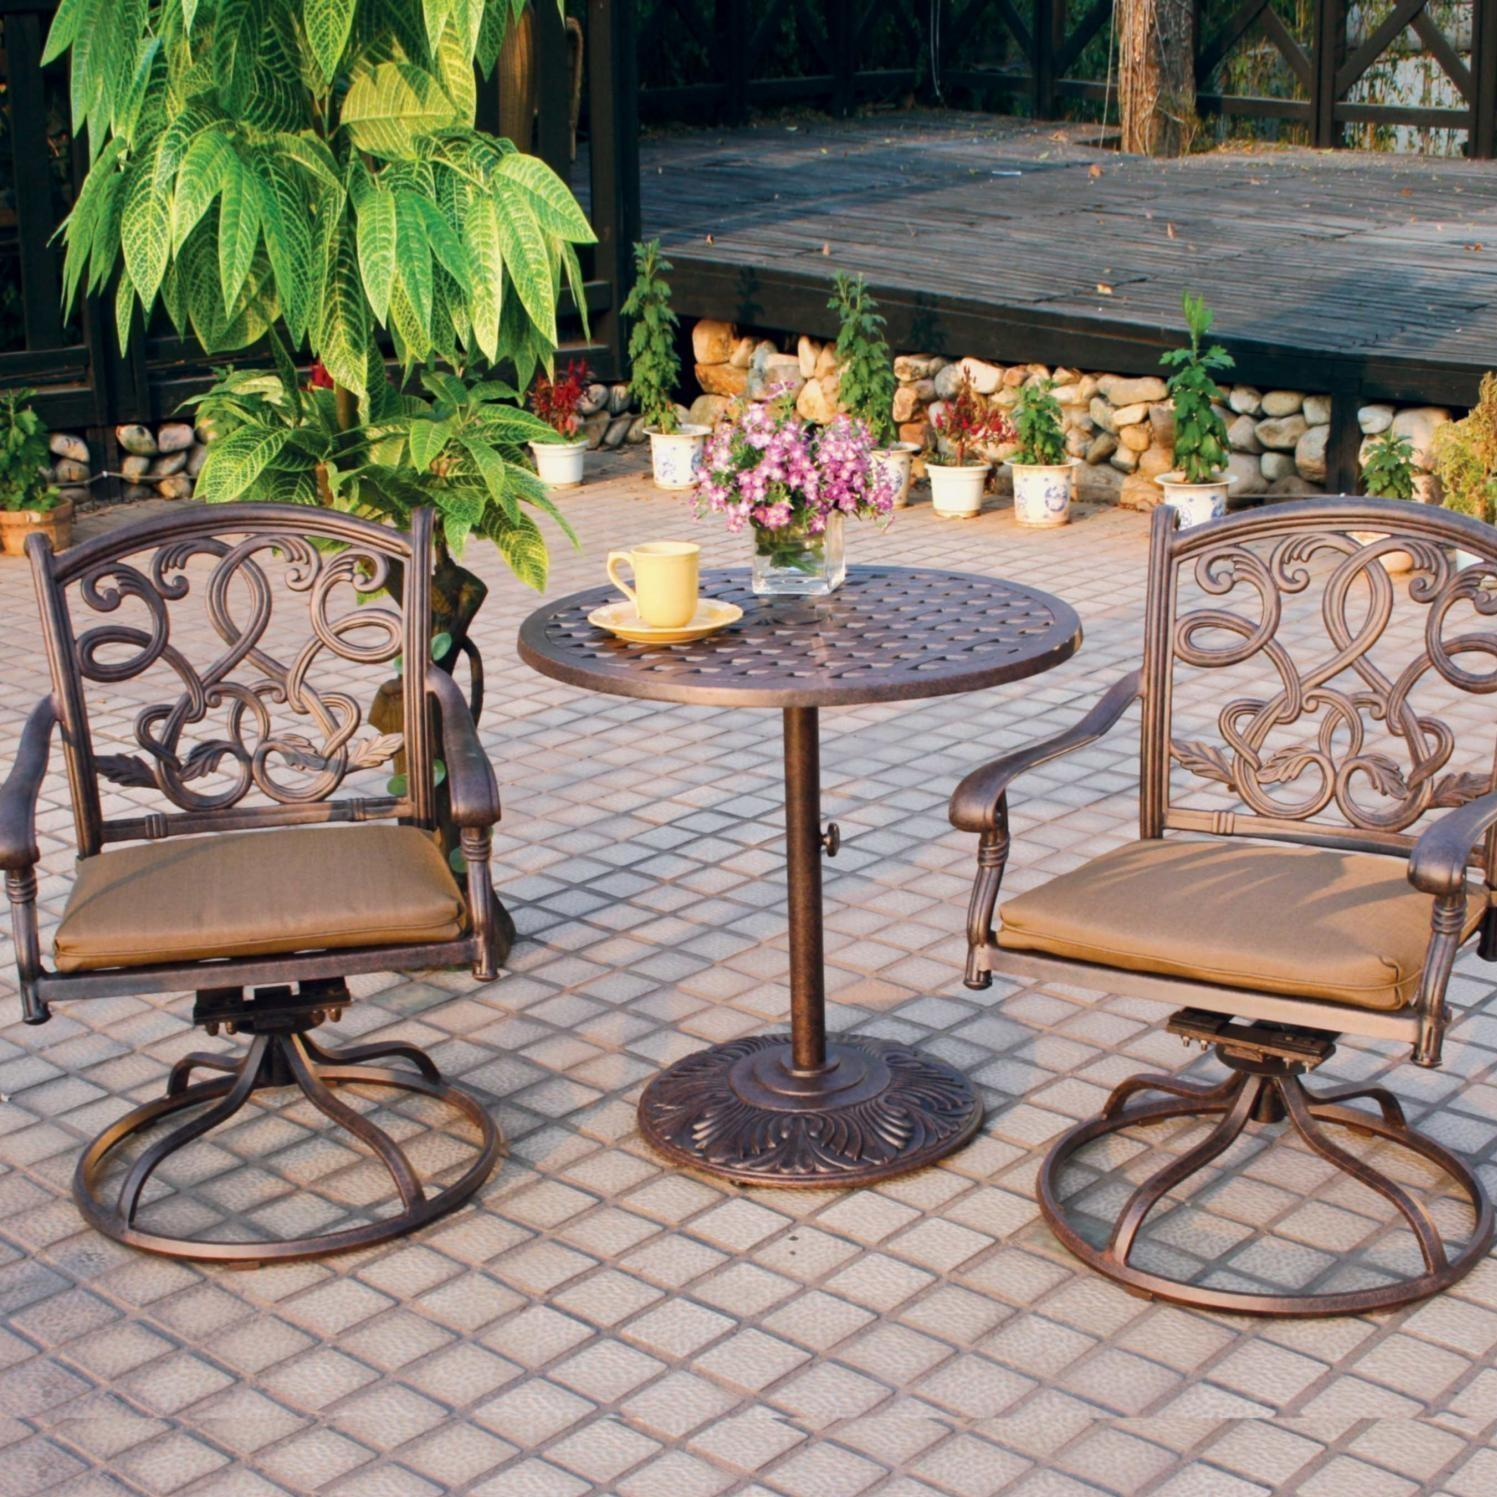 Darlee Santa Monica 2-person Cast Aluminum Patio Bistro Set - Antique Bronze at Sears.com